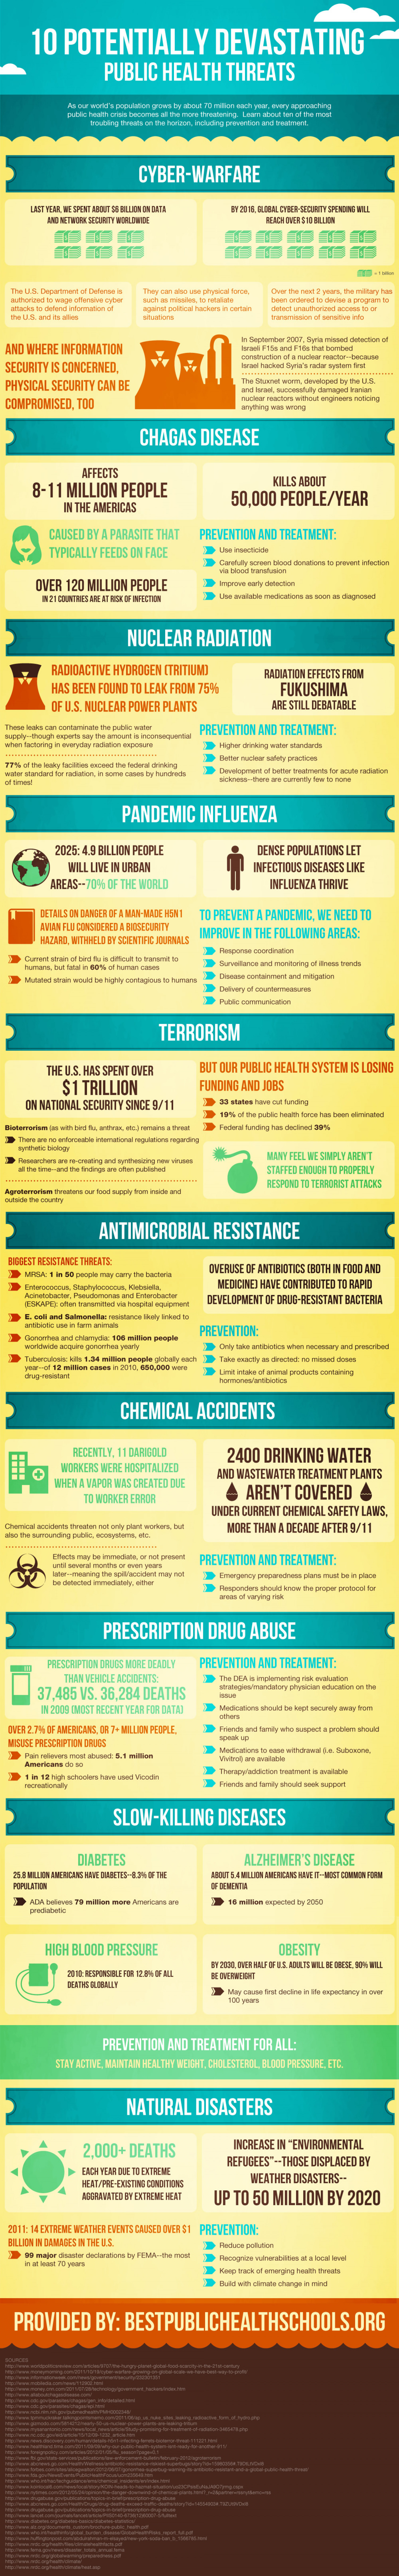 10 Potentially Devastating Public Health Threats Infographic